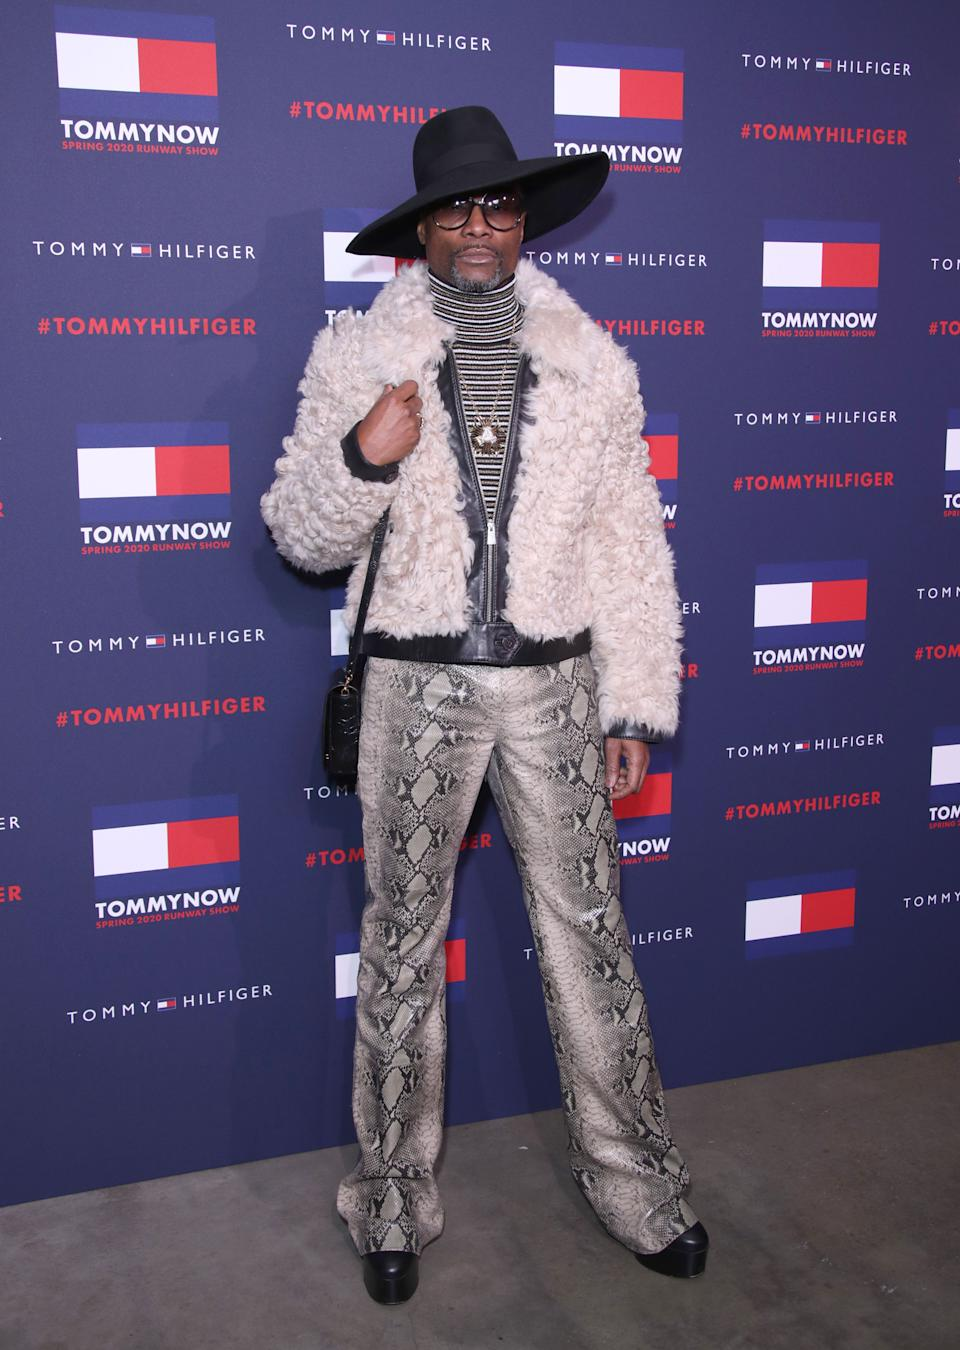 Billy Porter arrives at the Tommy Hilfiger show. (Getty Images)